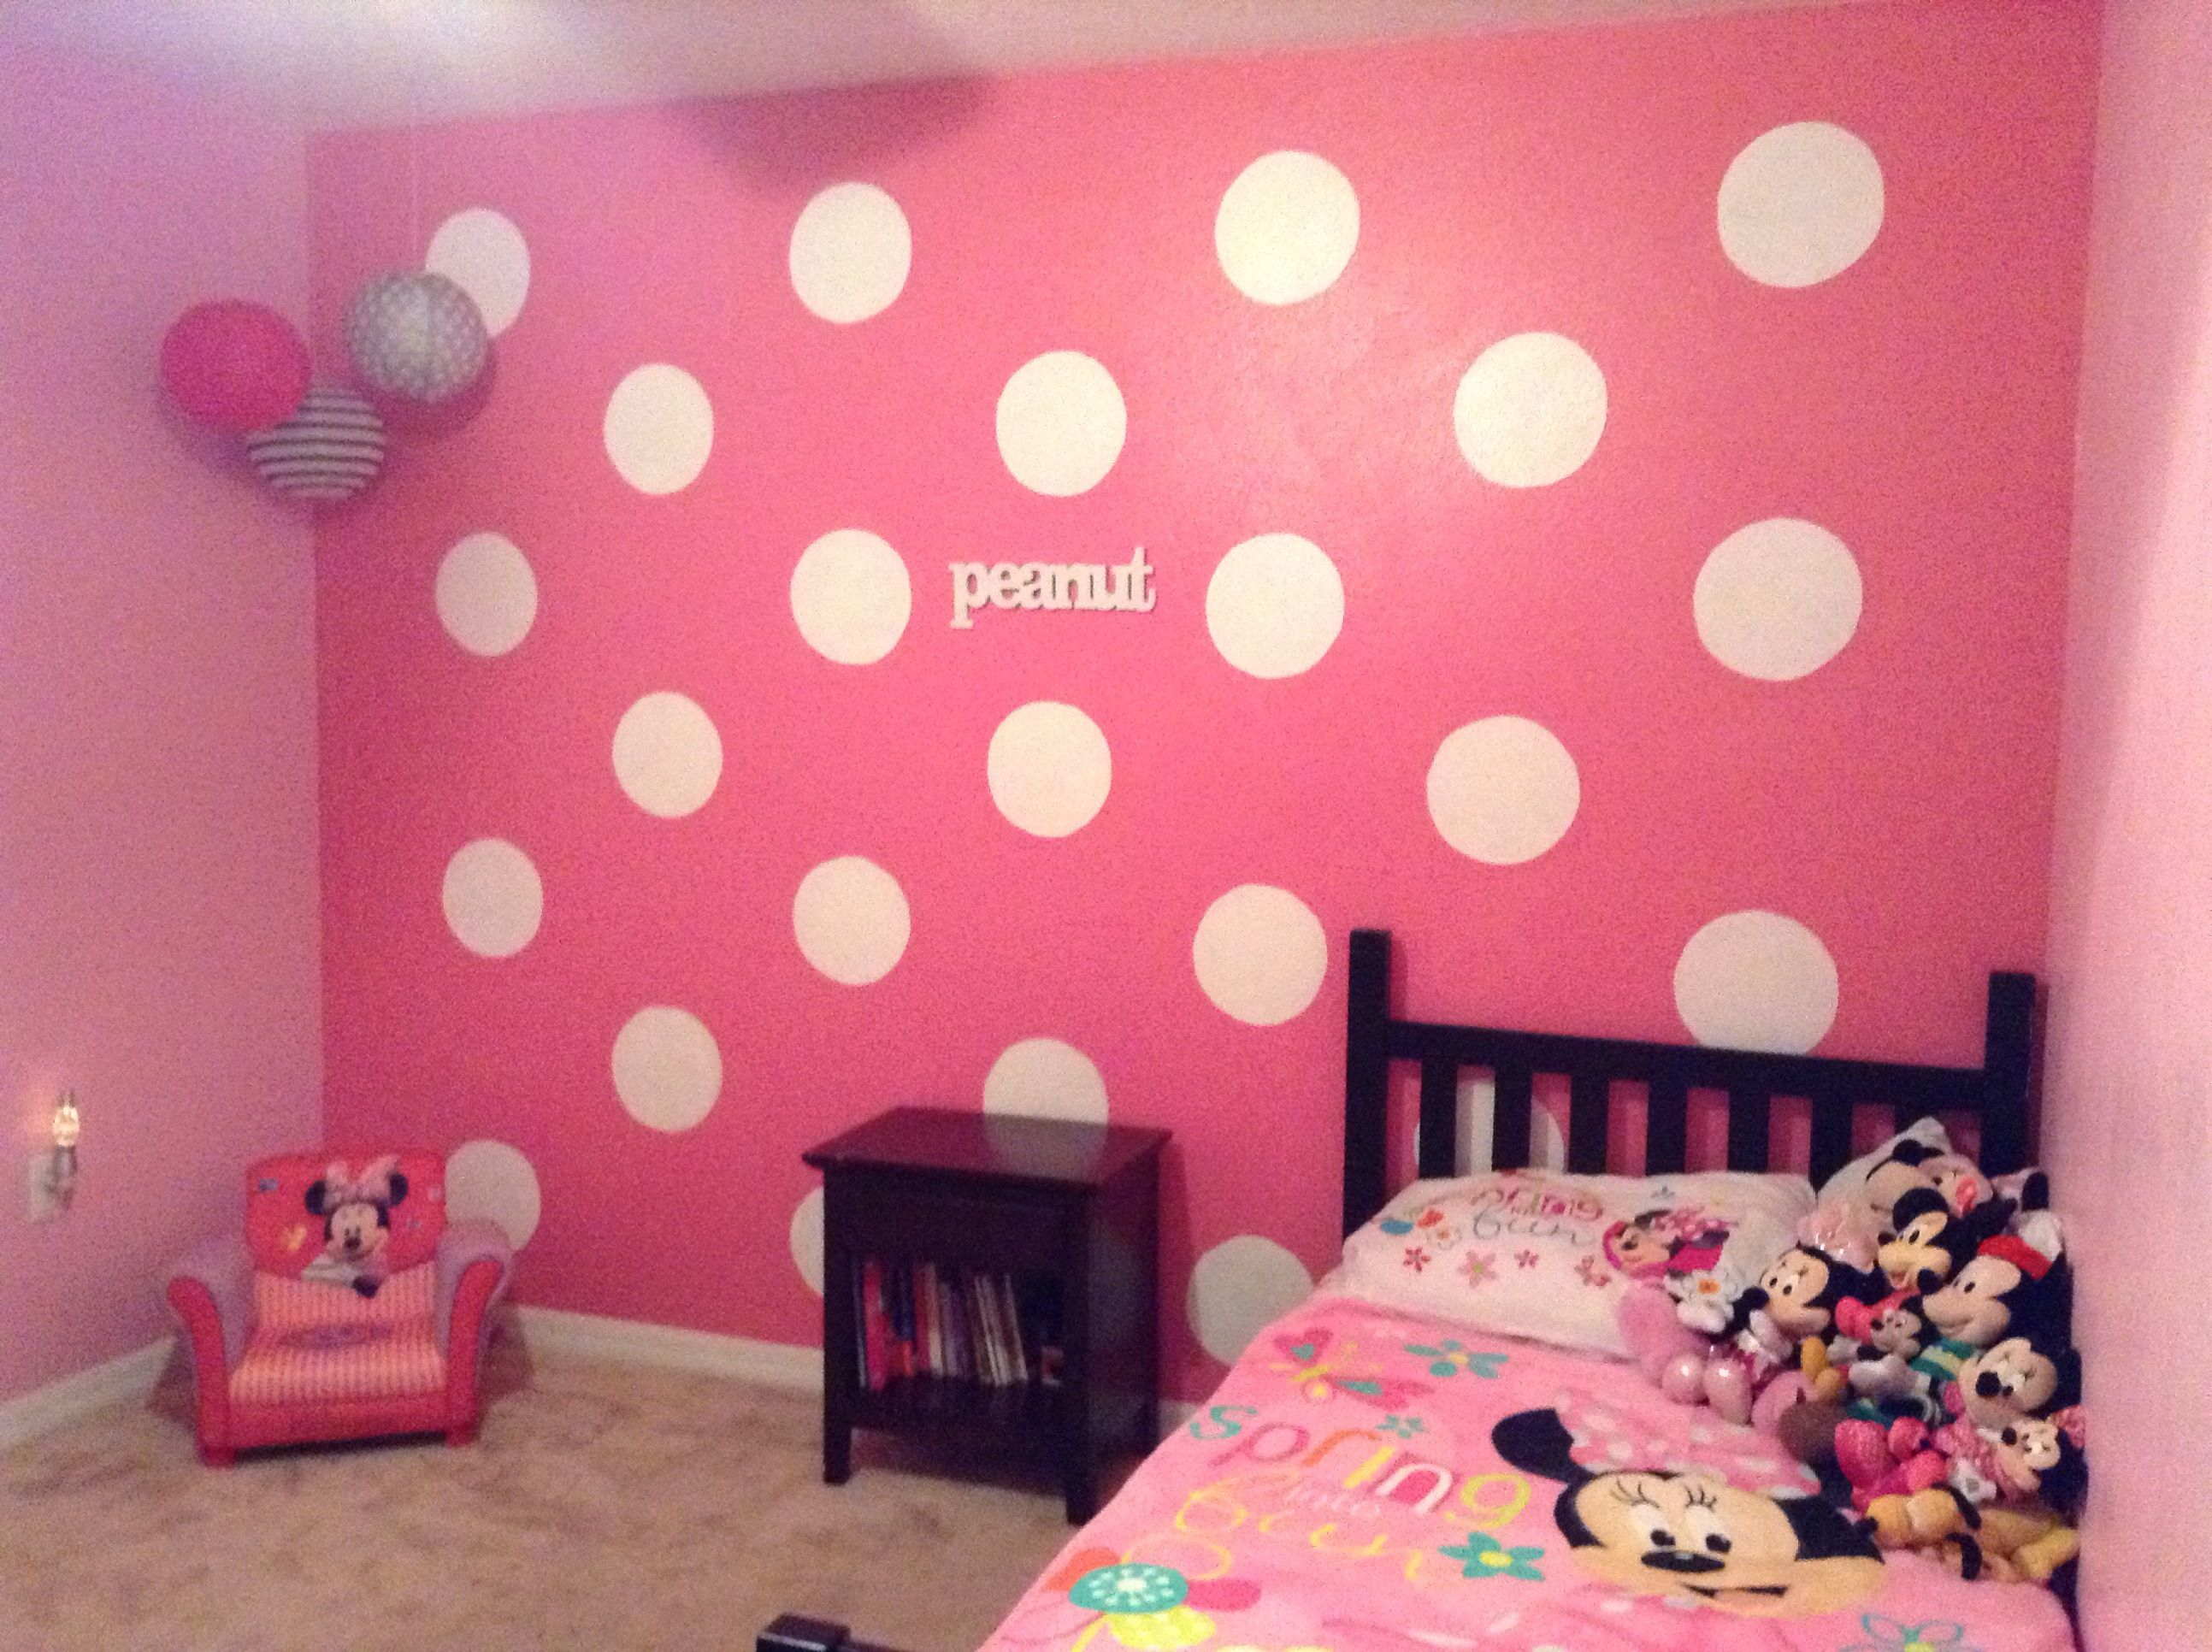 It could also be a really cute Minnie Mouse room for a